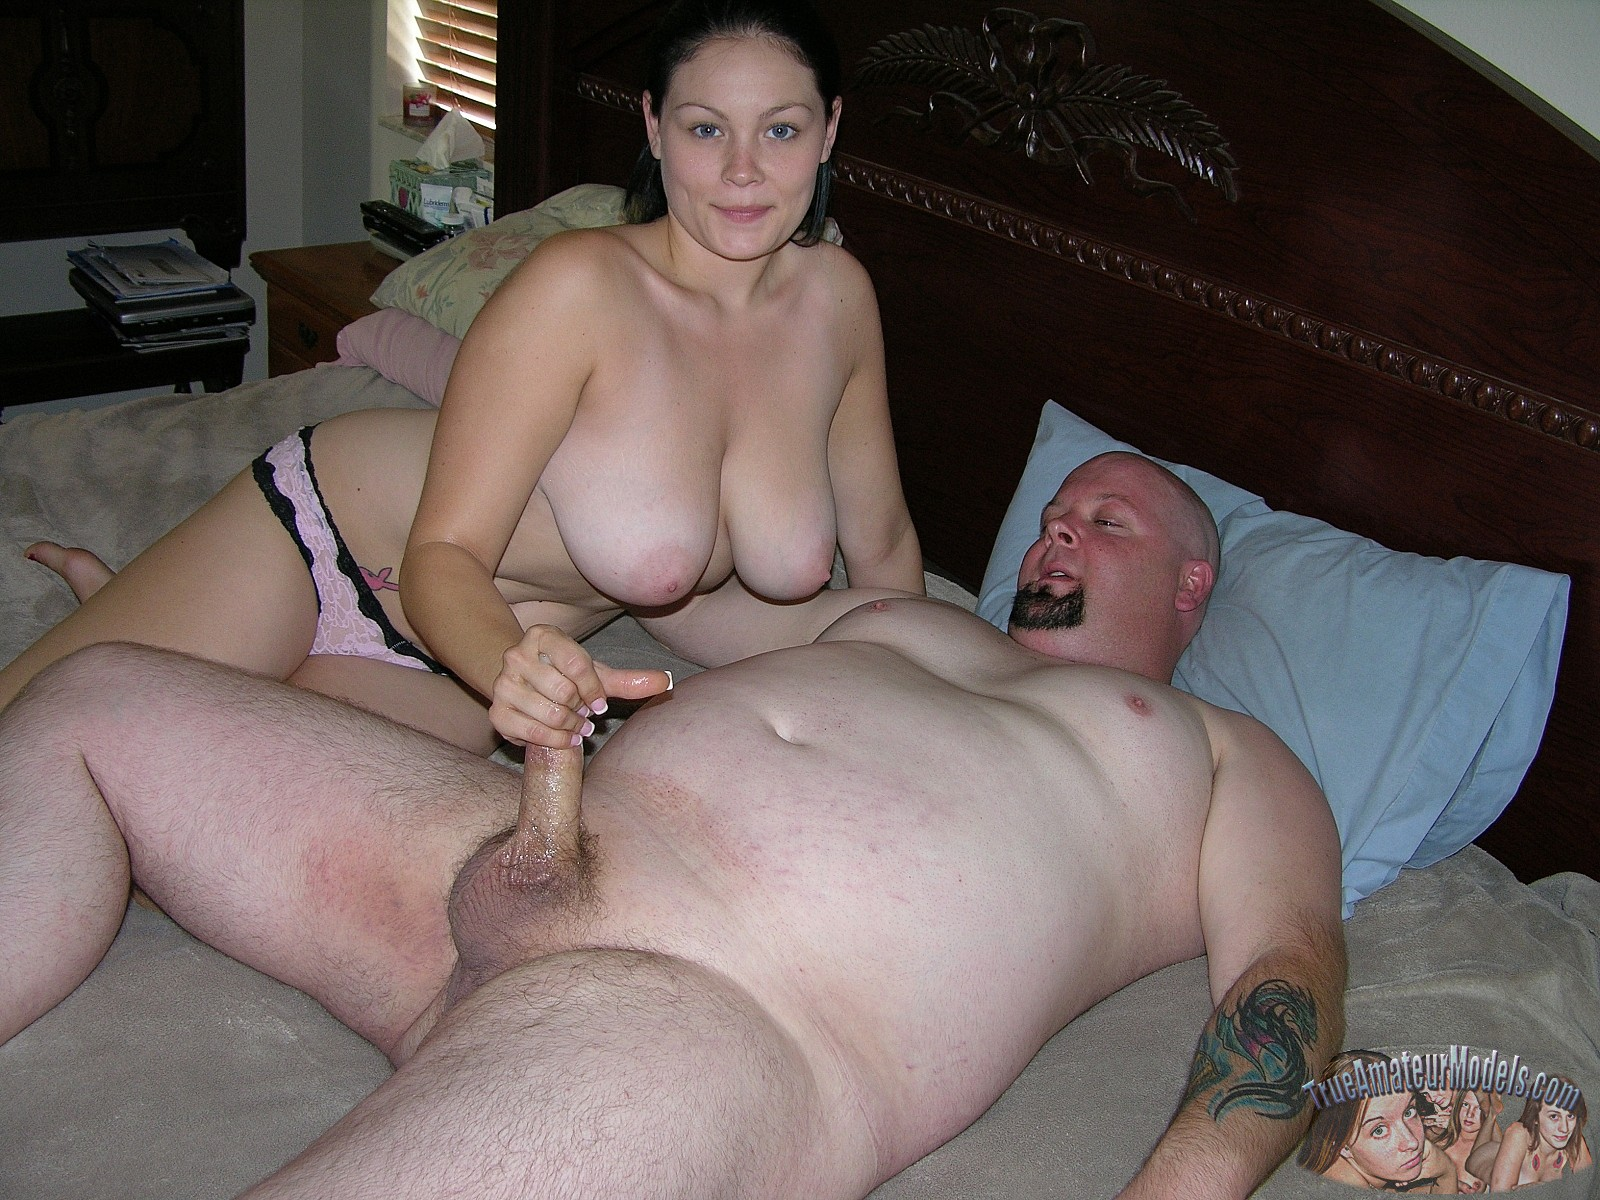 Housewifes pics redhead hairy group